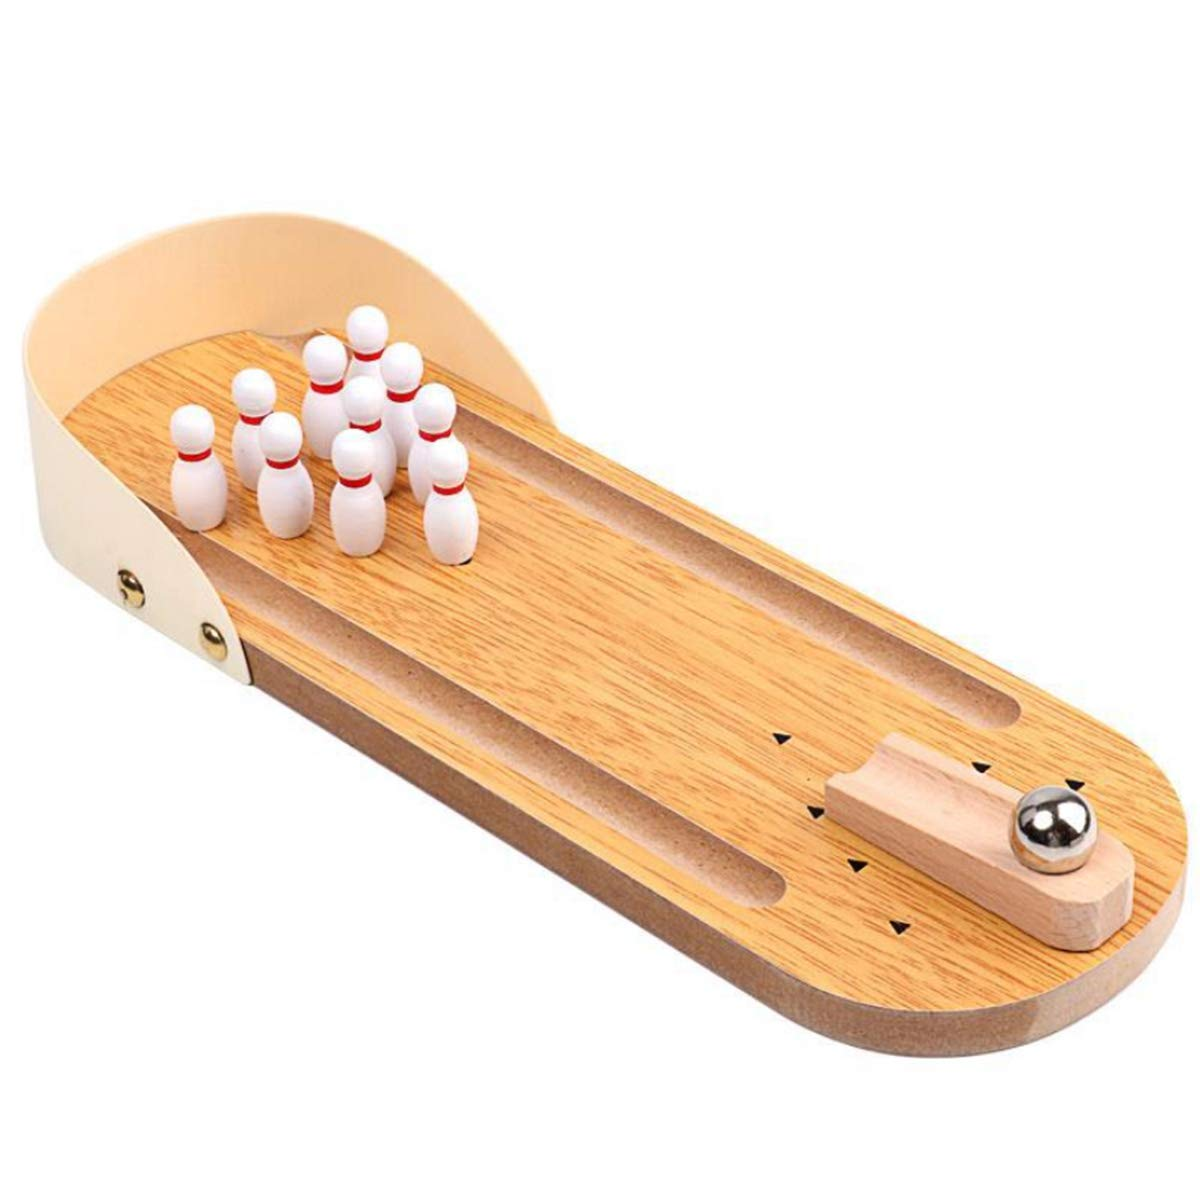 Halloluck Mini Bowling Game Mini Wooden Desktop Bowling Game Mini Tabletop Bowling for Kids Adults, Mini Desk Ball Game by Halloluck